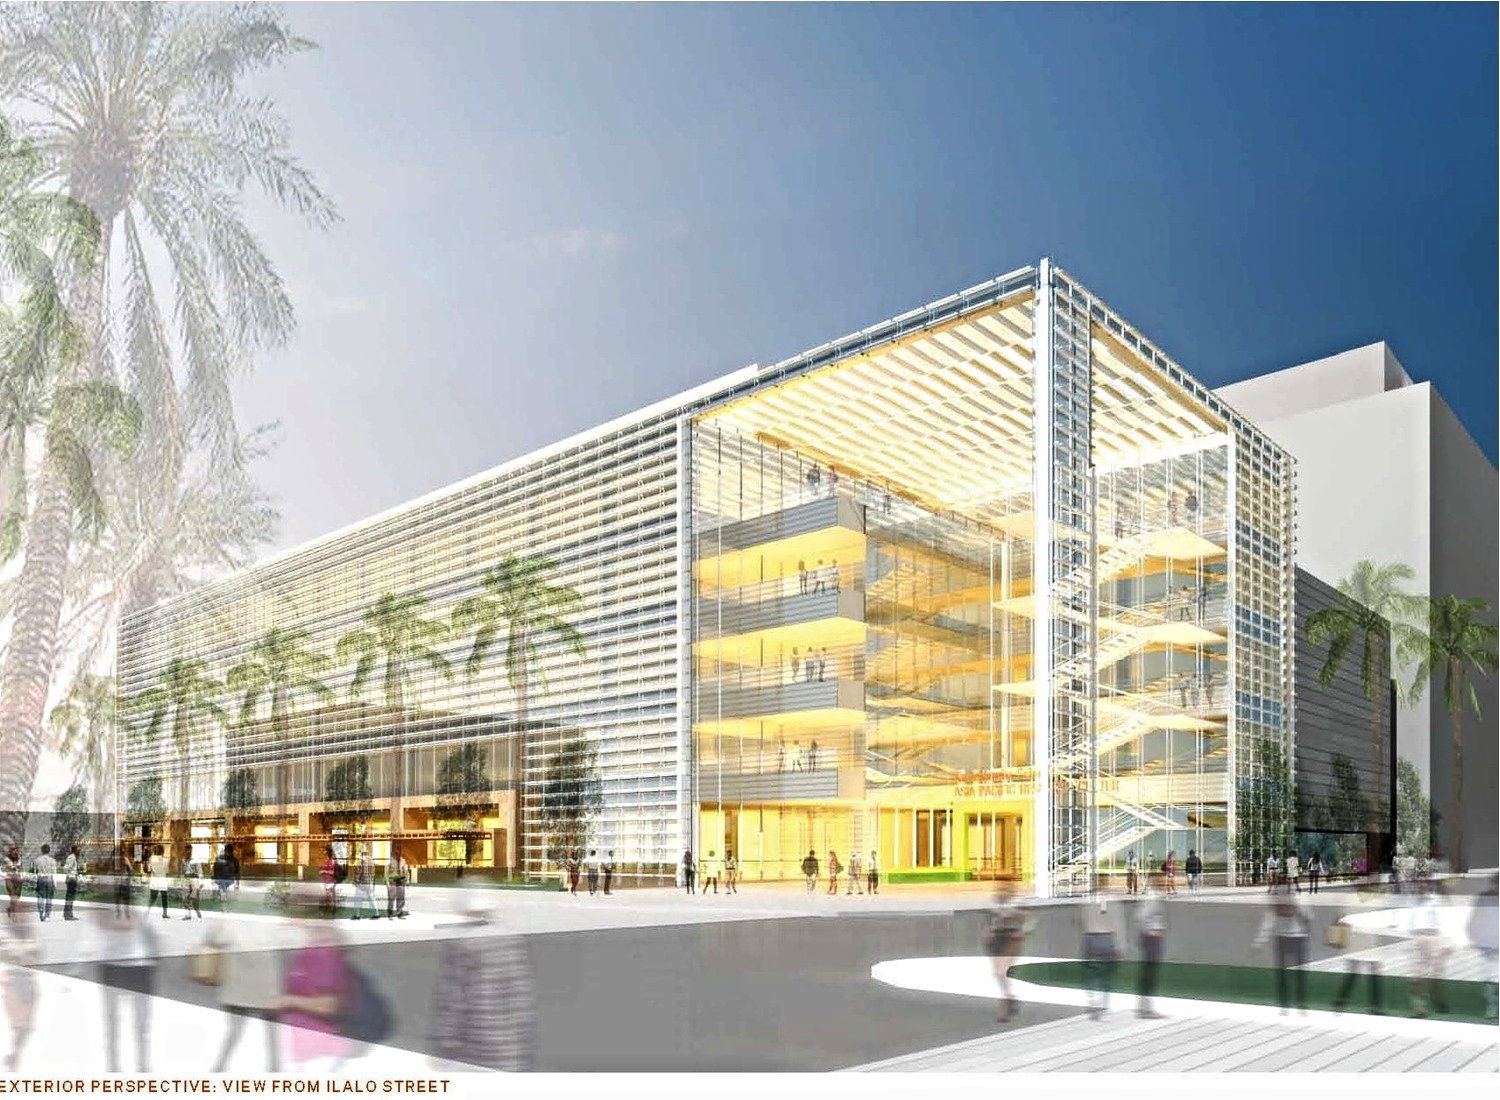 asia pacific innovation center - 450,000 sf   Honolulu, HI - Development advisory services  with Phase 3 Properties and design by   HOK